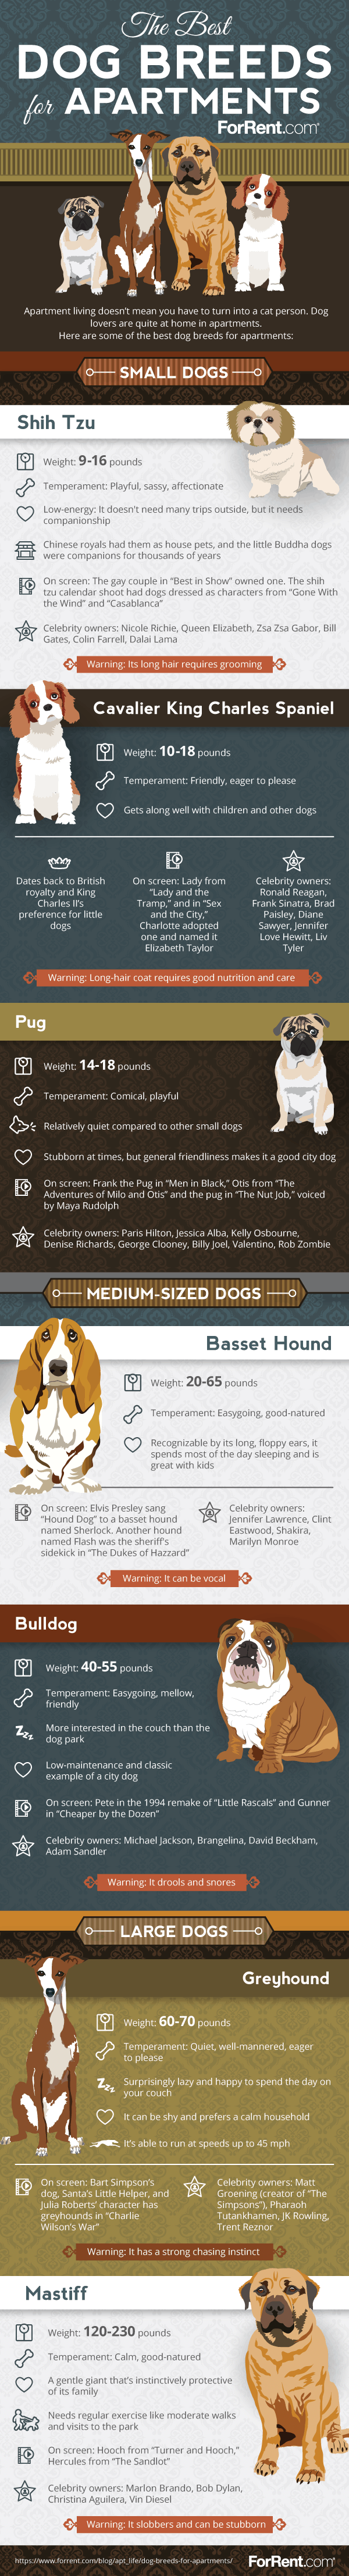 infographic the best dog breeds for apartment living the